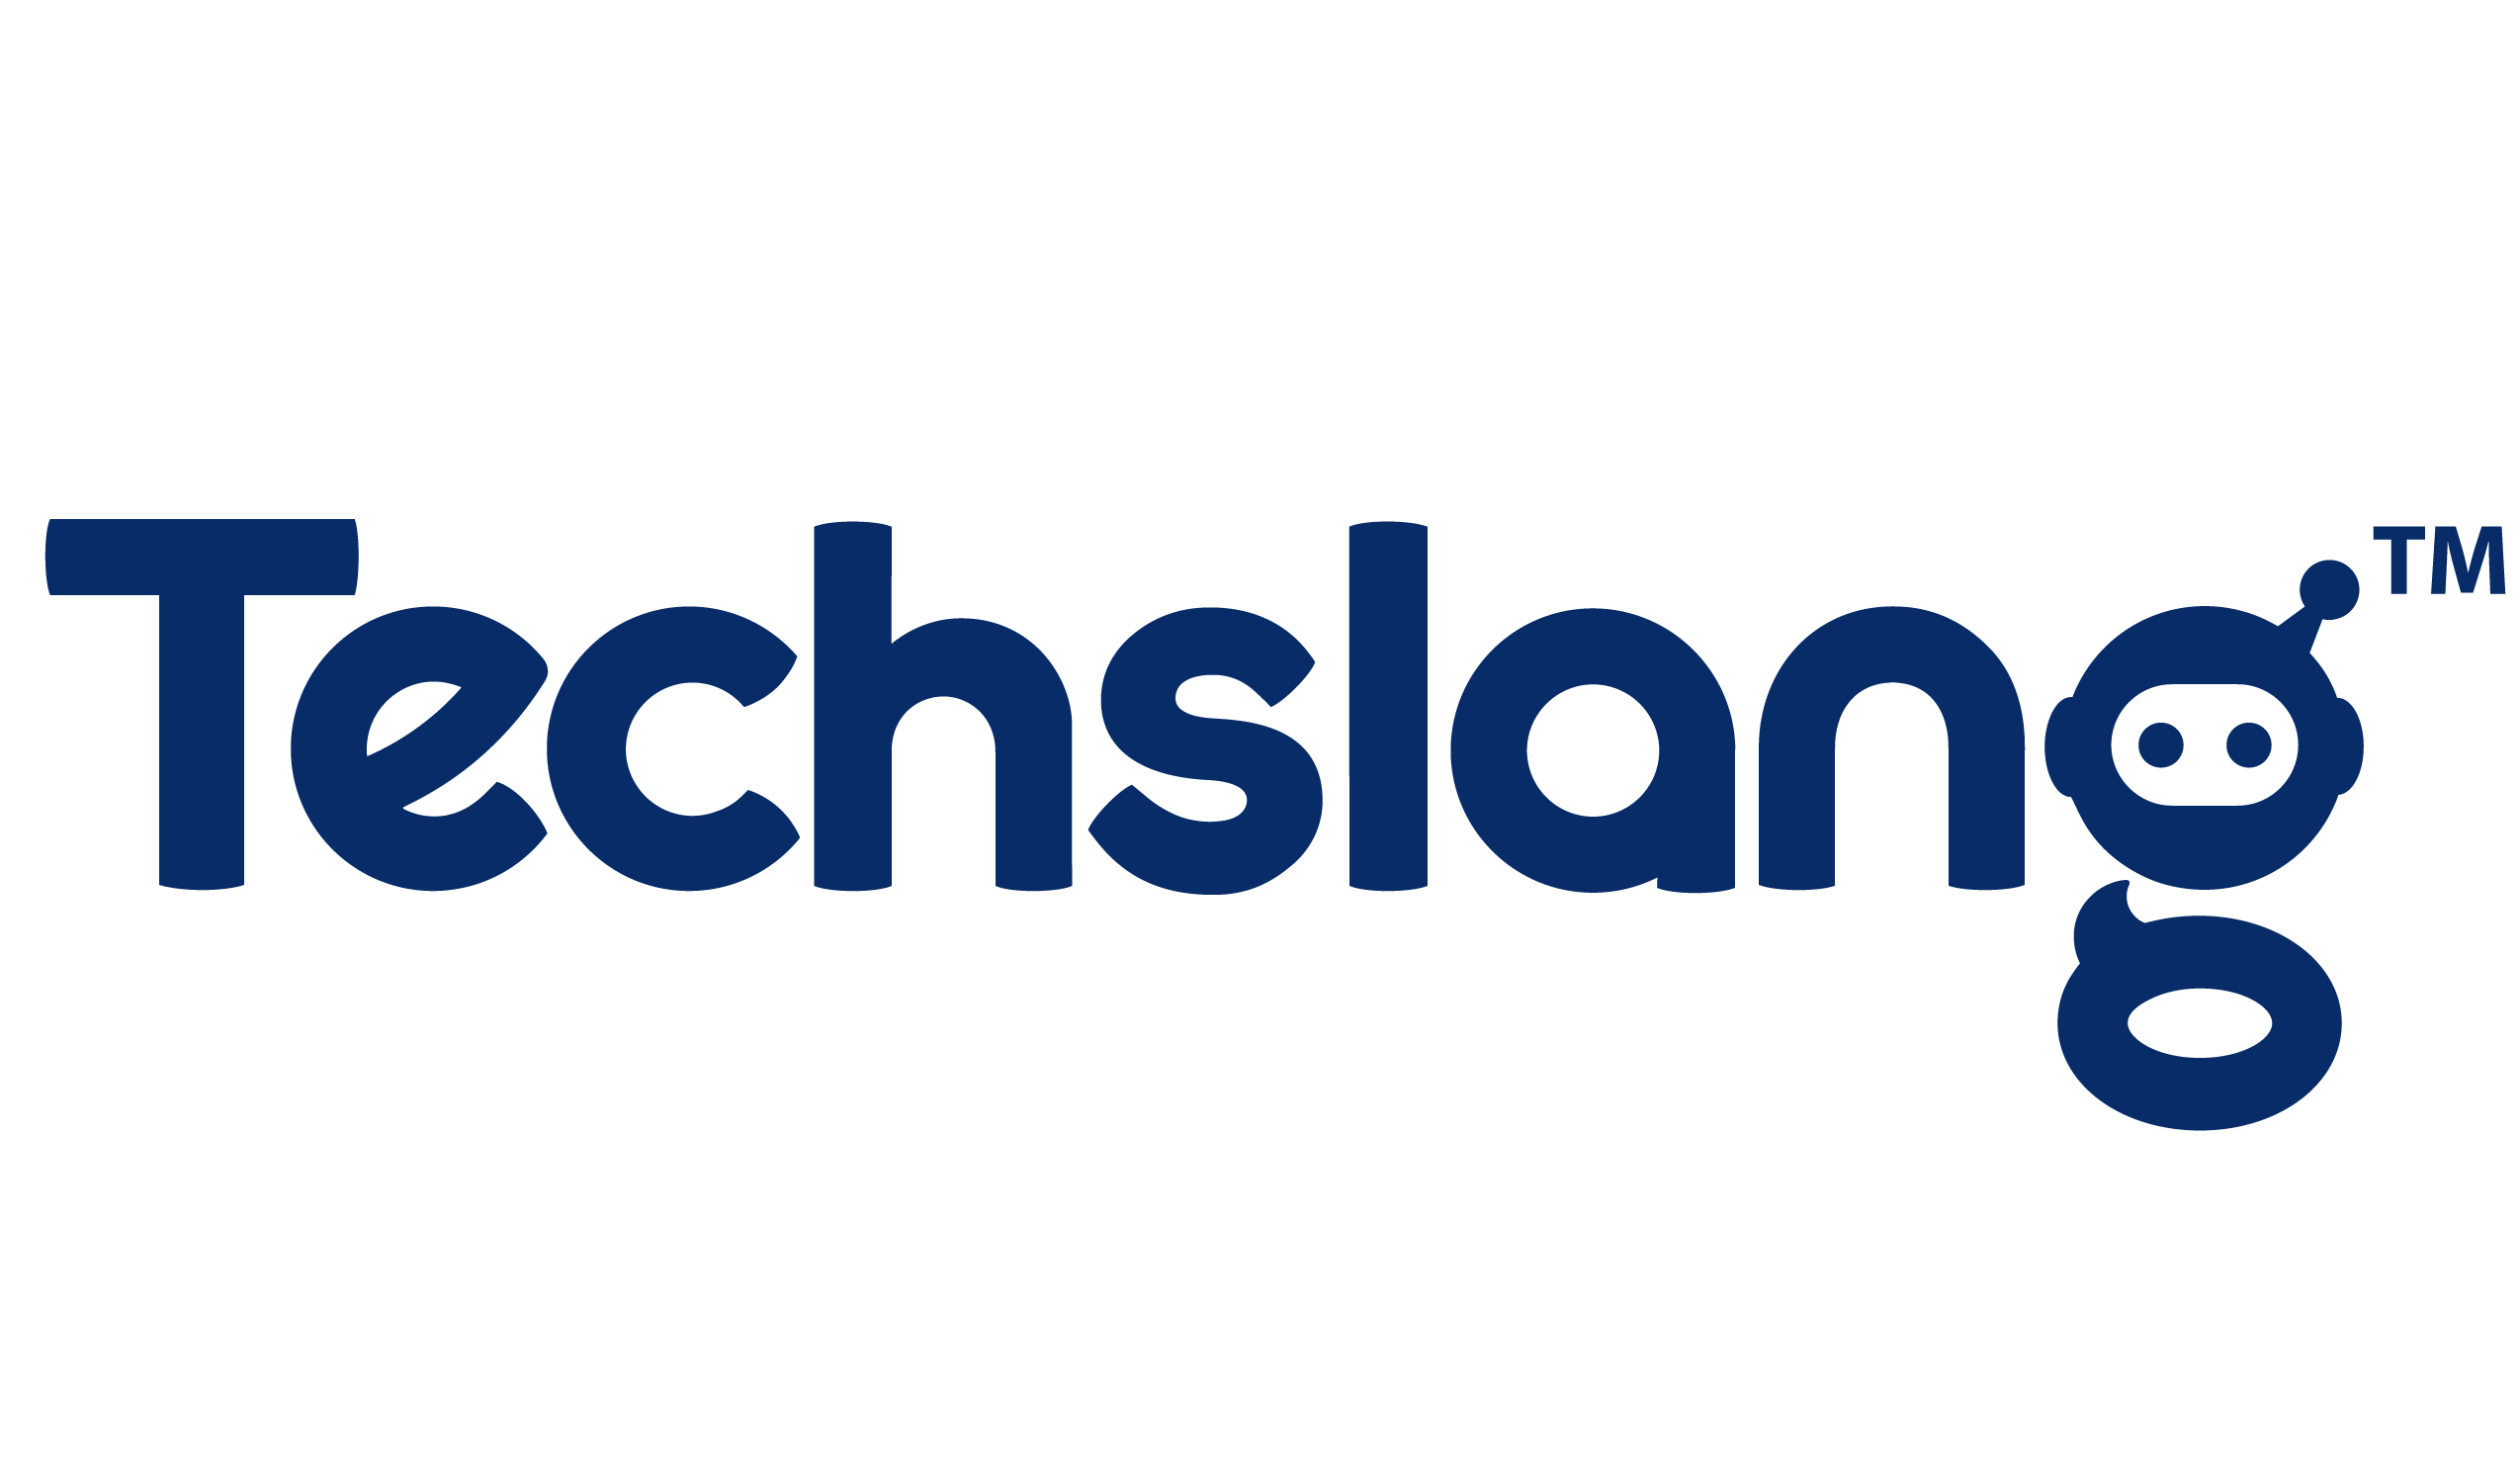 Techslang Launches Technology Awareness Platform To Make Sense Of Technical Concepts And Jargon Newswire